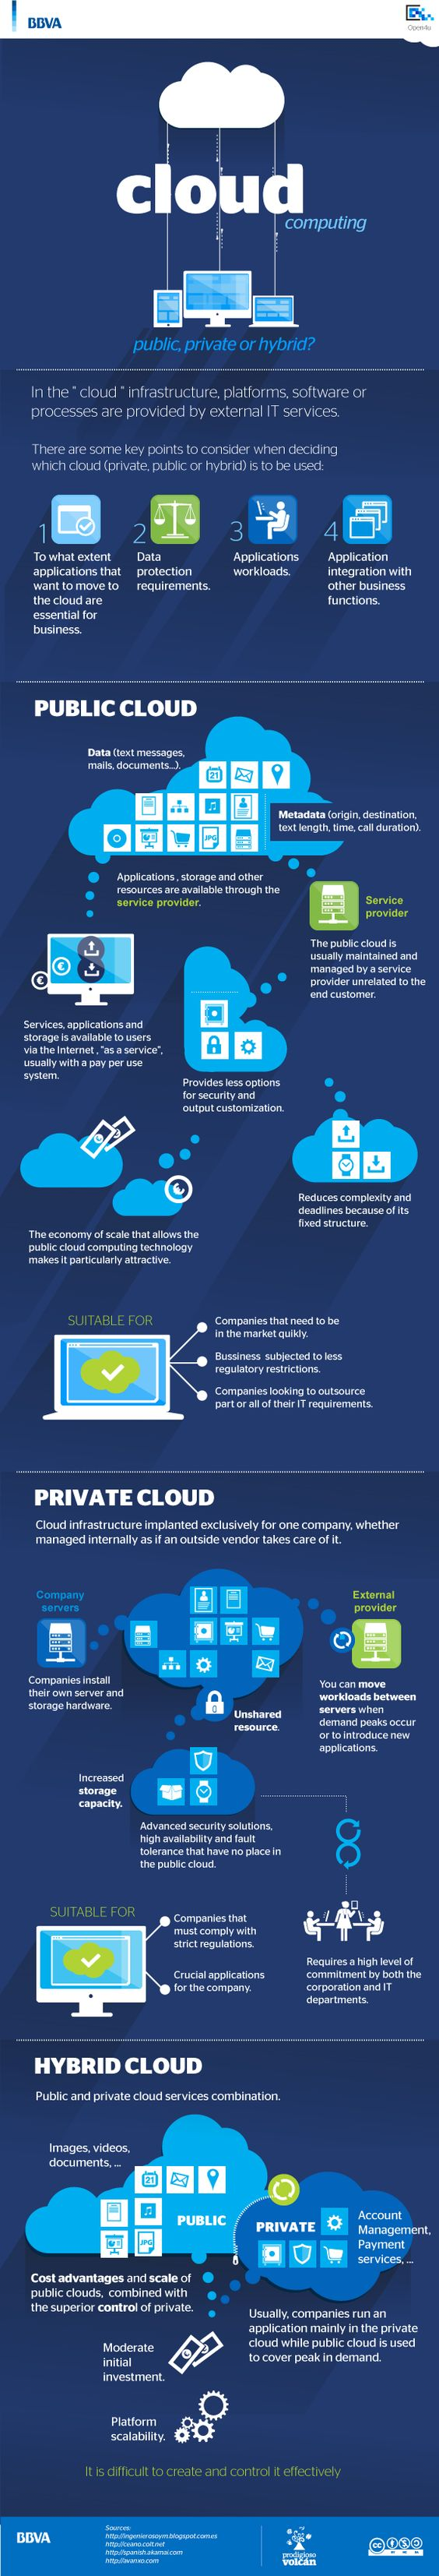 [InfoGraphic] Cloud Computing - YourDailyTech